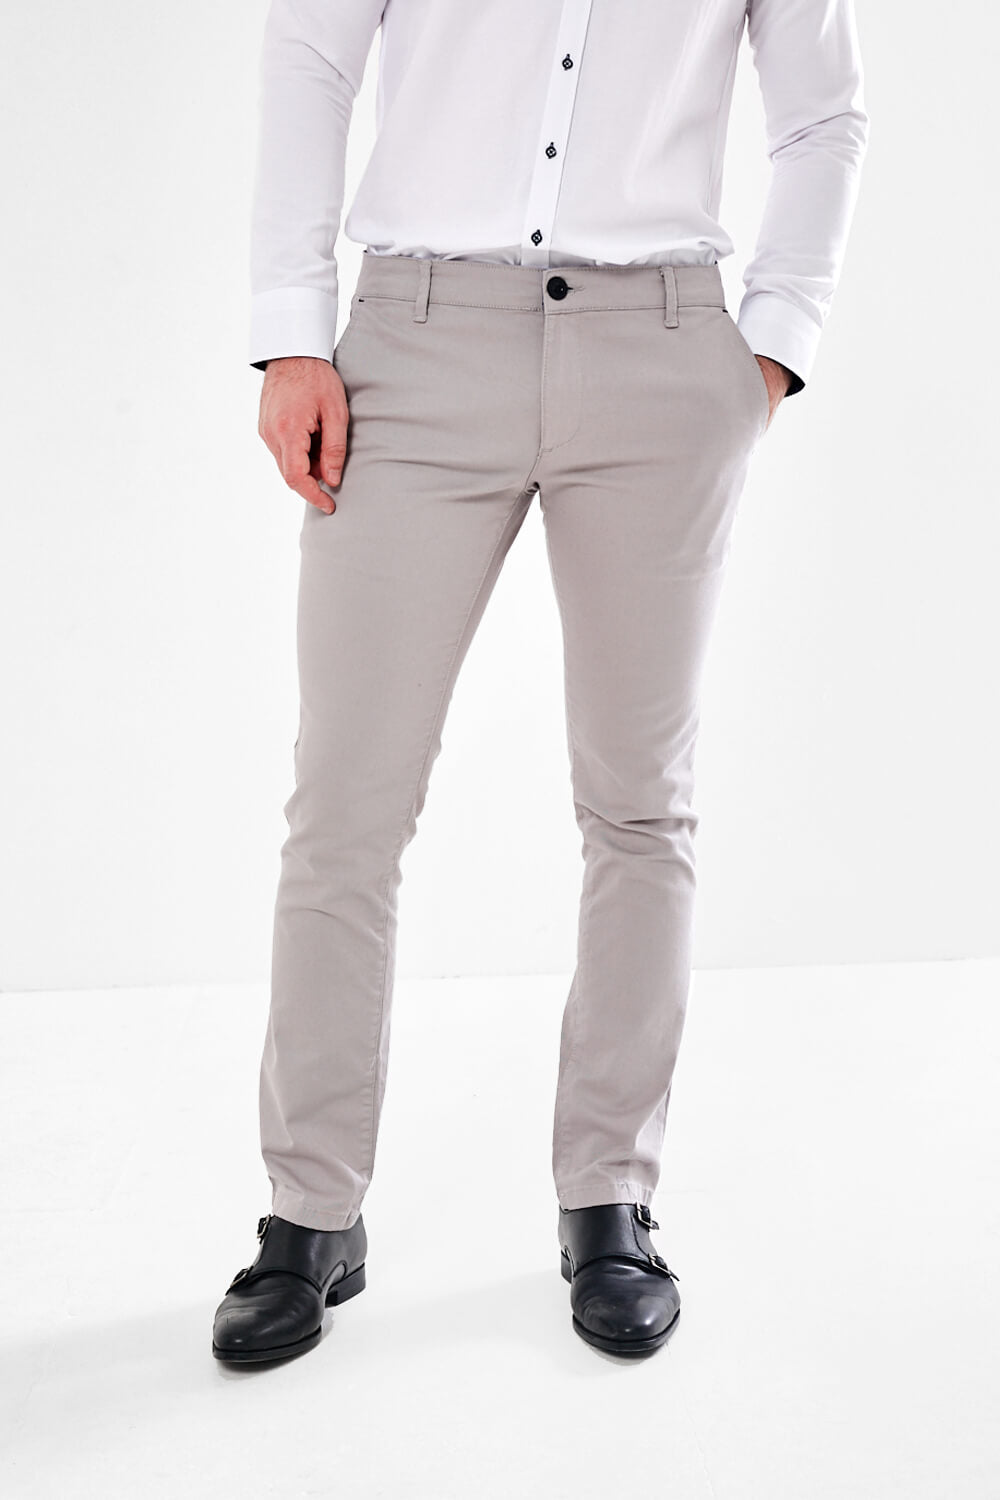 Scott & Wade Tailored Chino - Sprint Grey - jjdonnelly